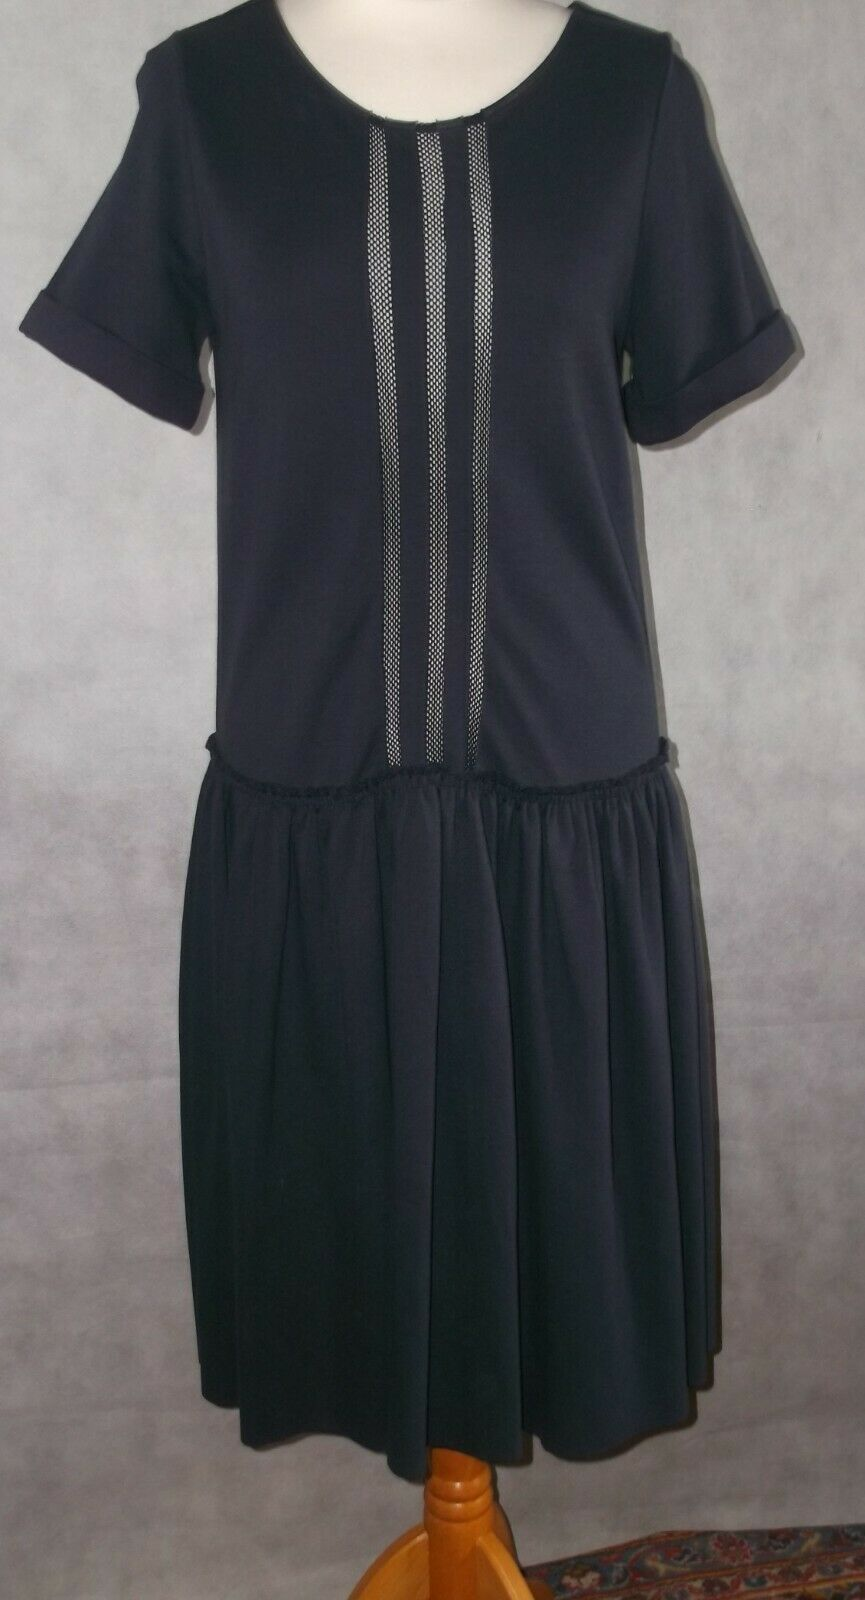 DGoldTHEE SCHUMACHER jersey pleated dress very dark Blau Größe 2 UK 10